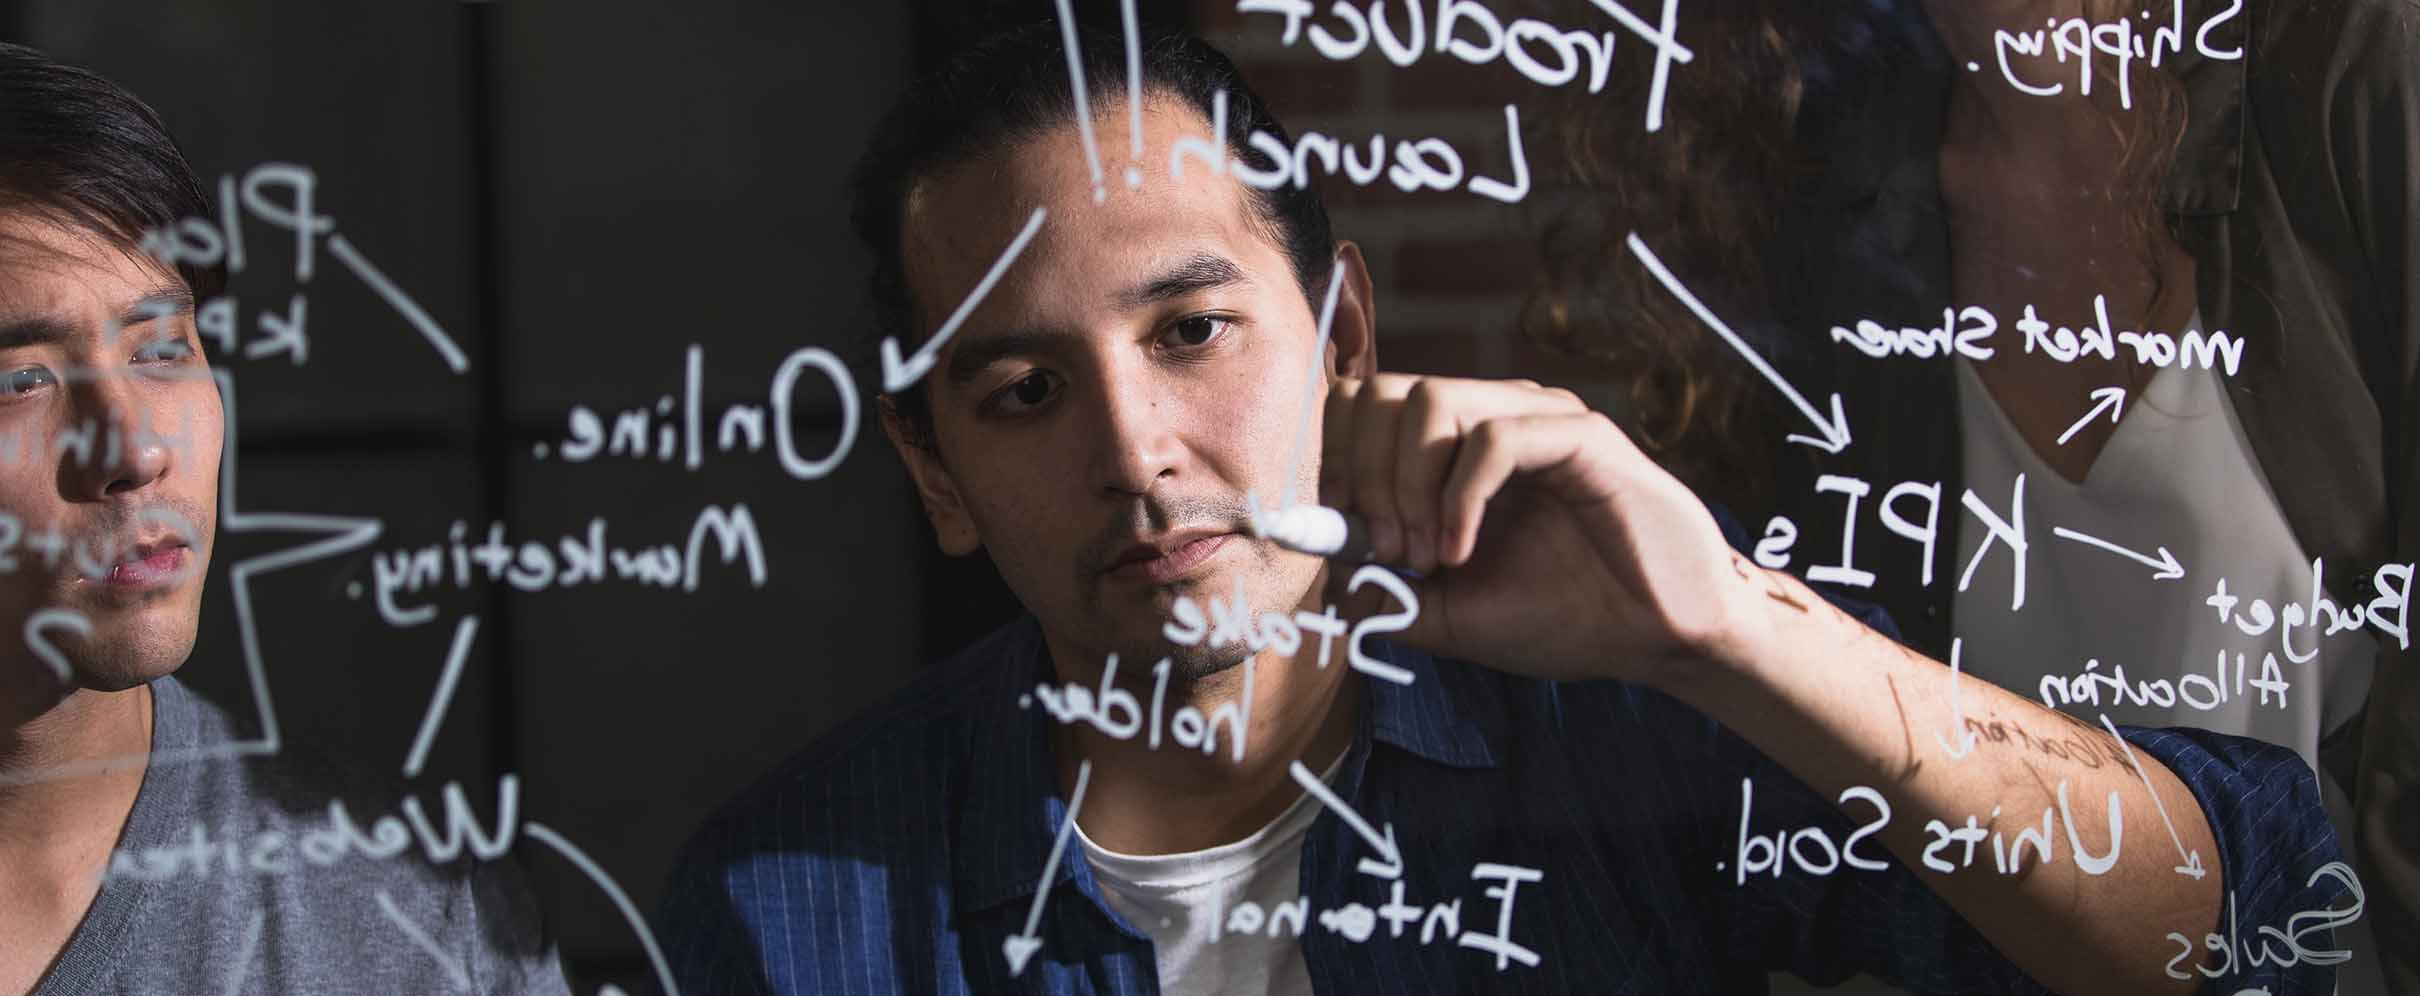 A man maps his affiliate marketing strategy on a clear wall.